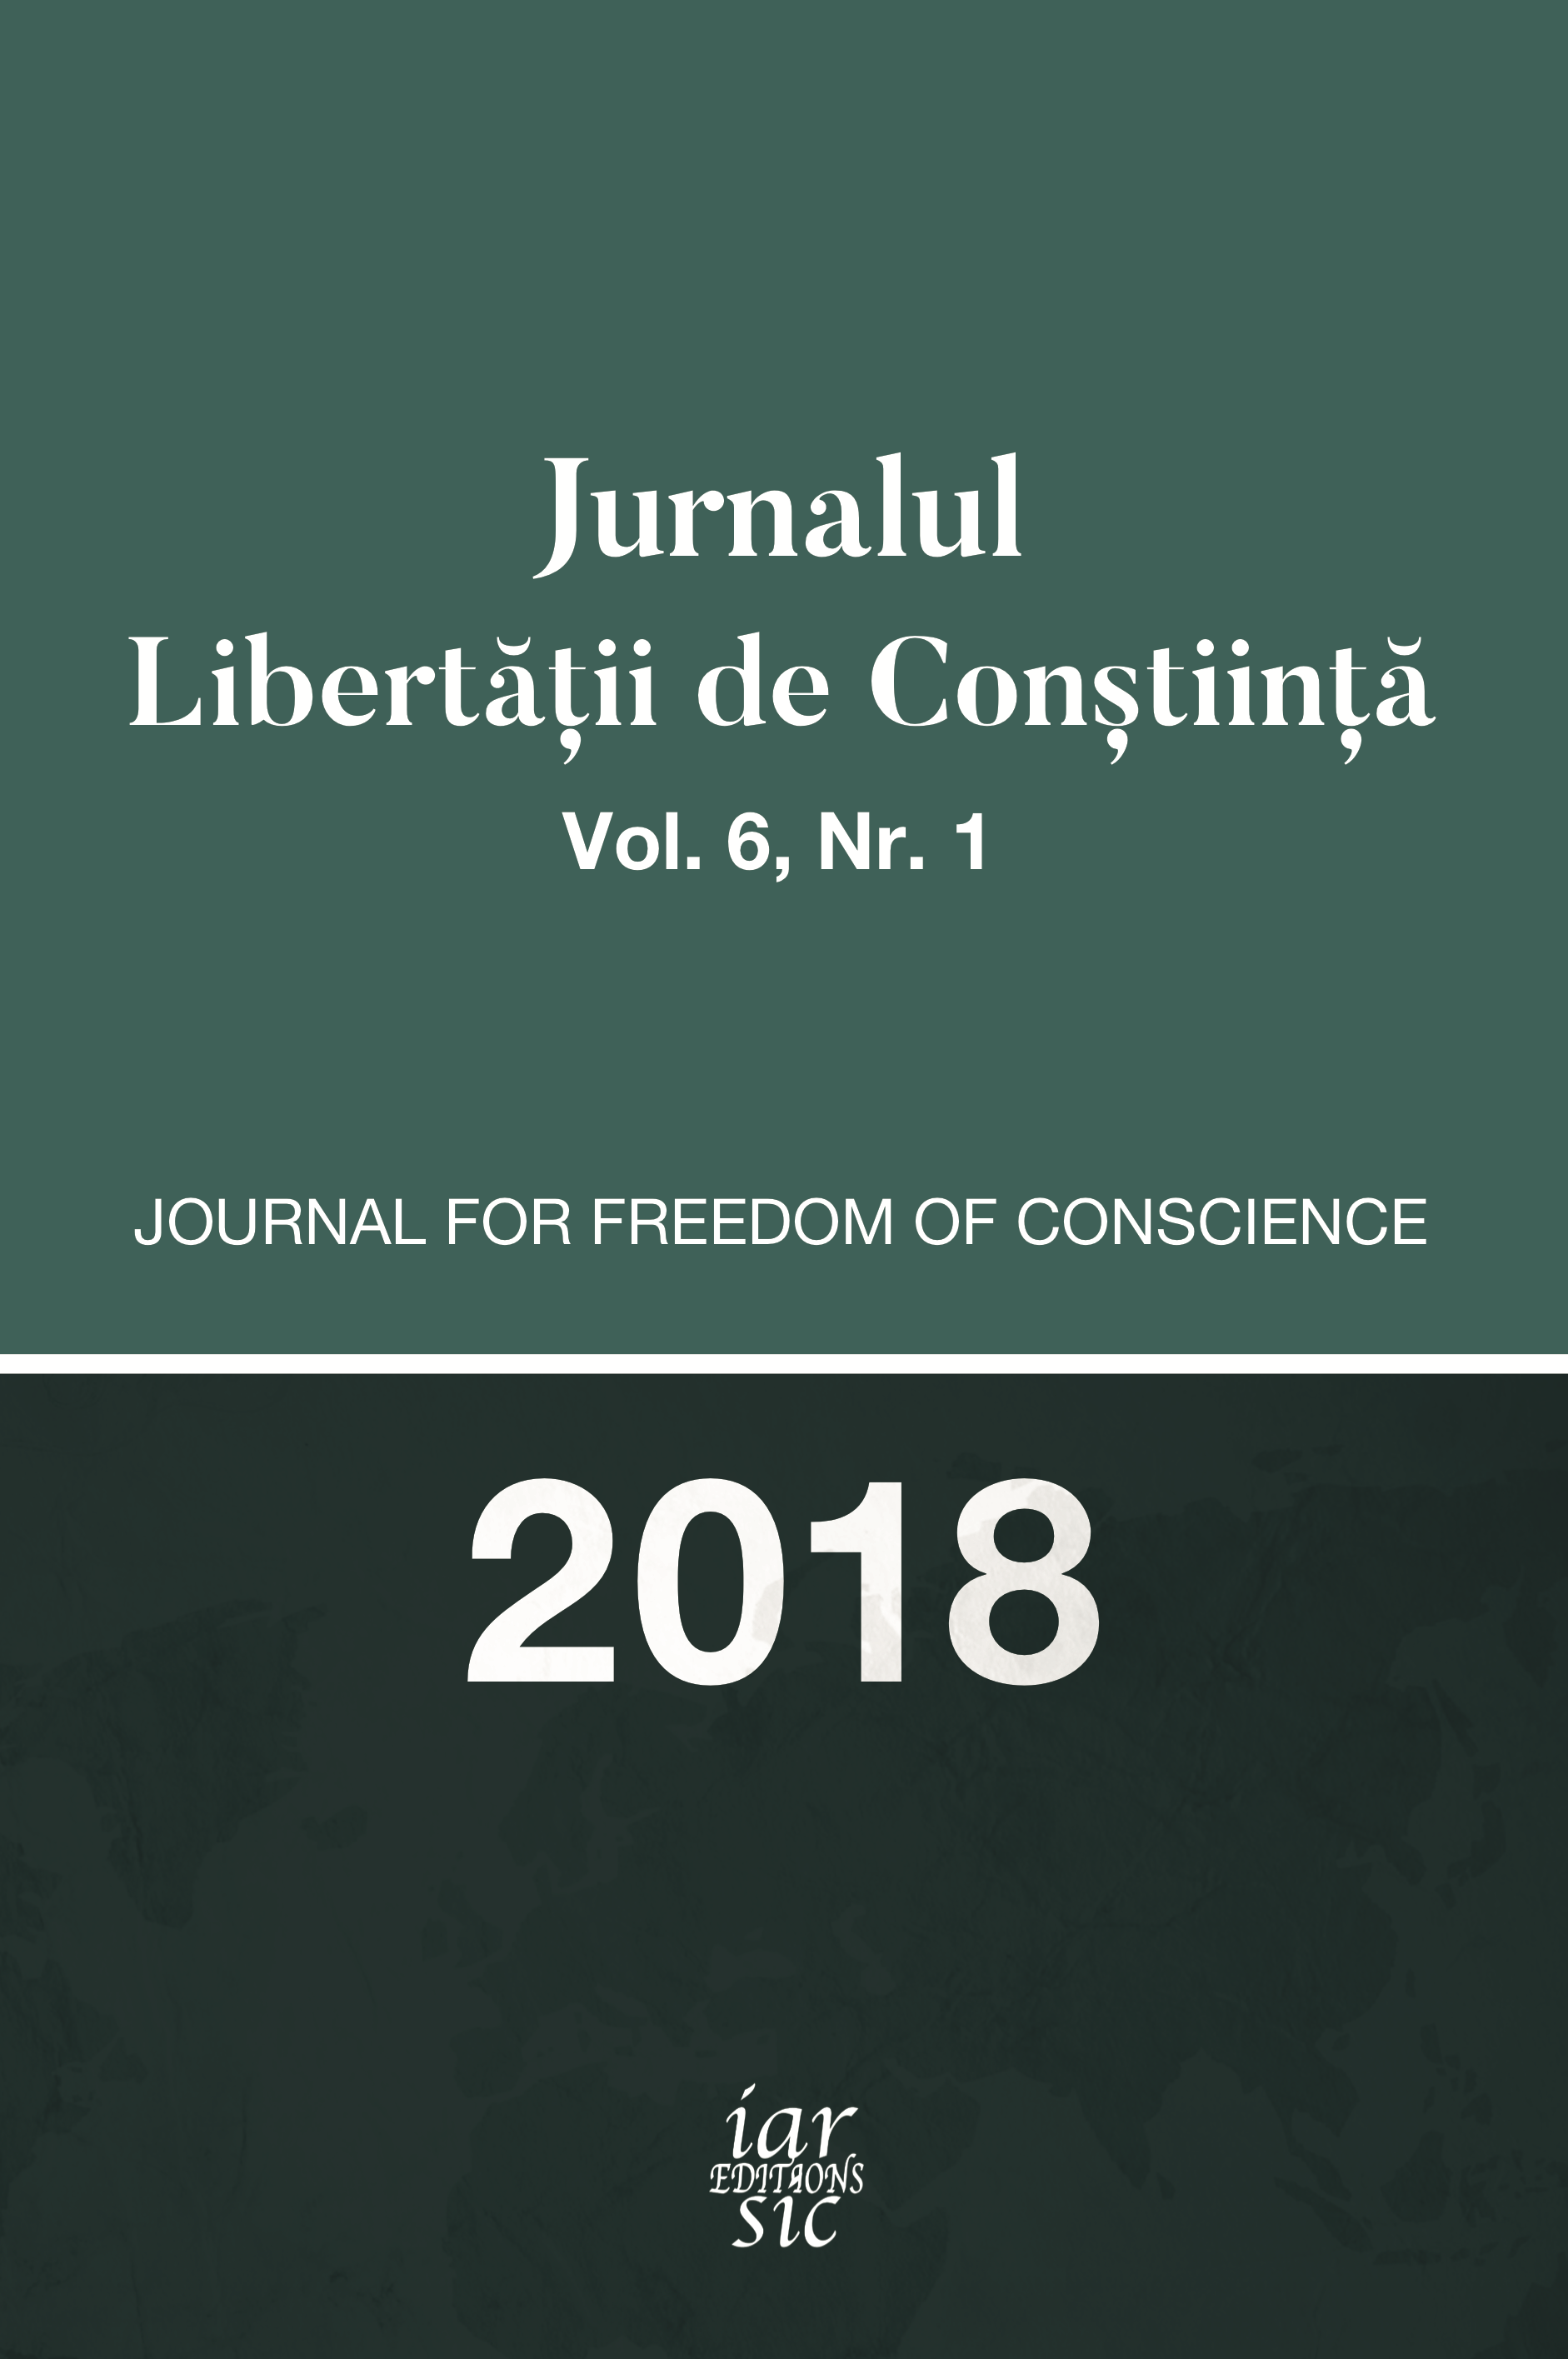 Journal for Freedom of Conscience Cover Image